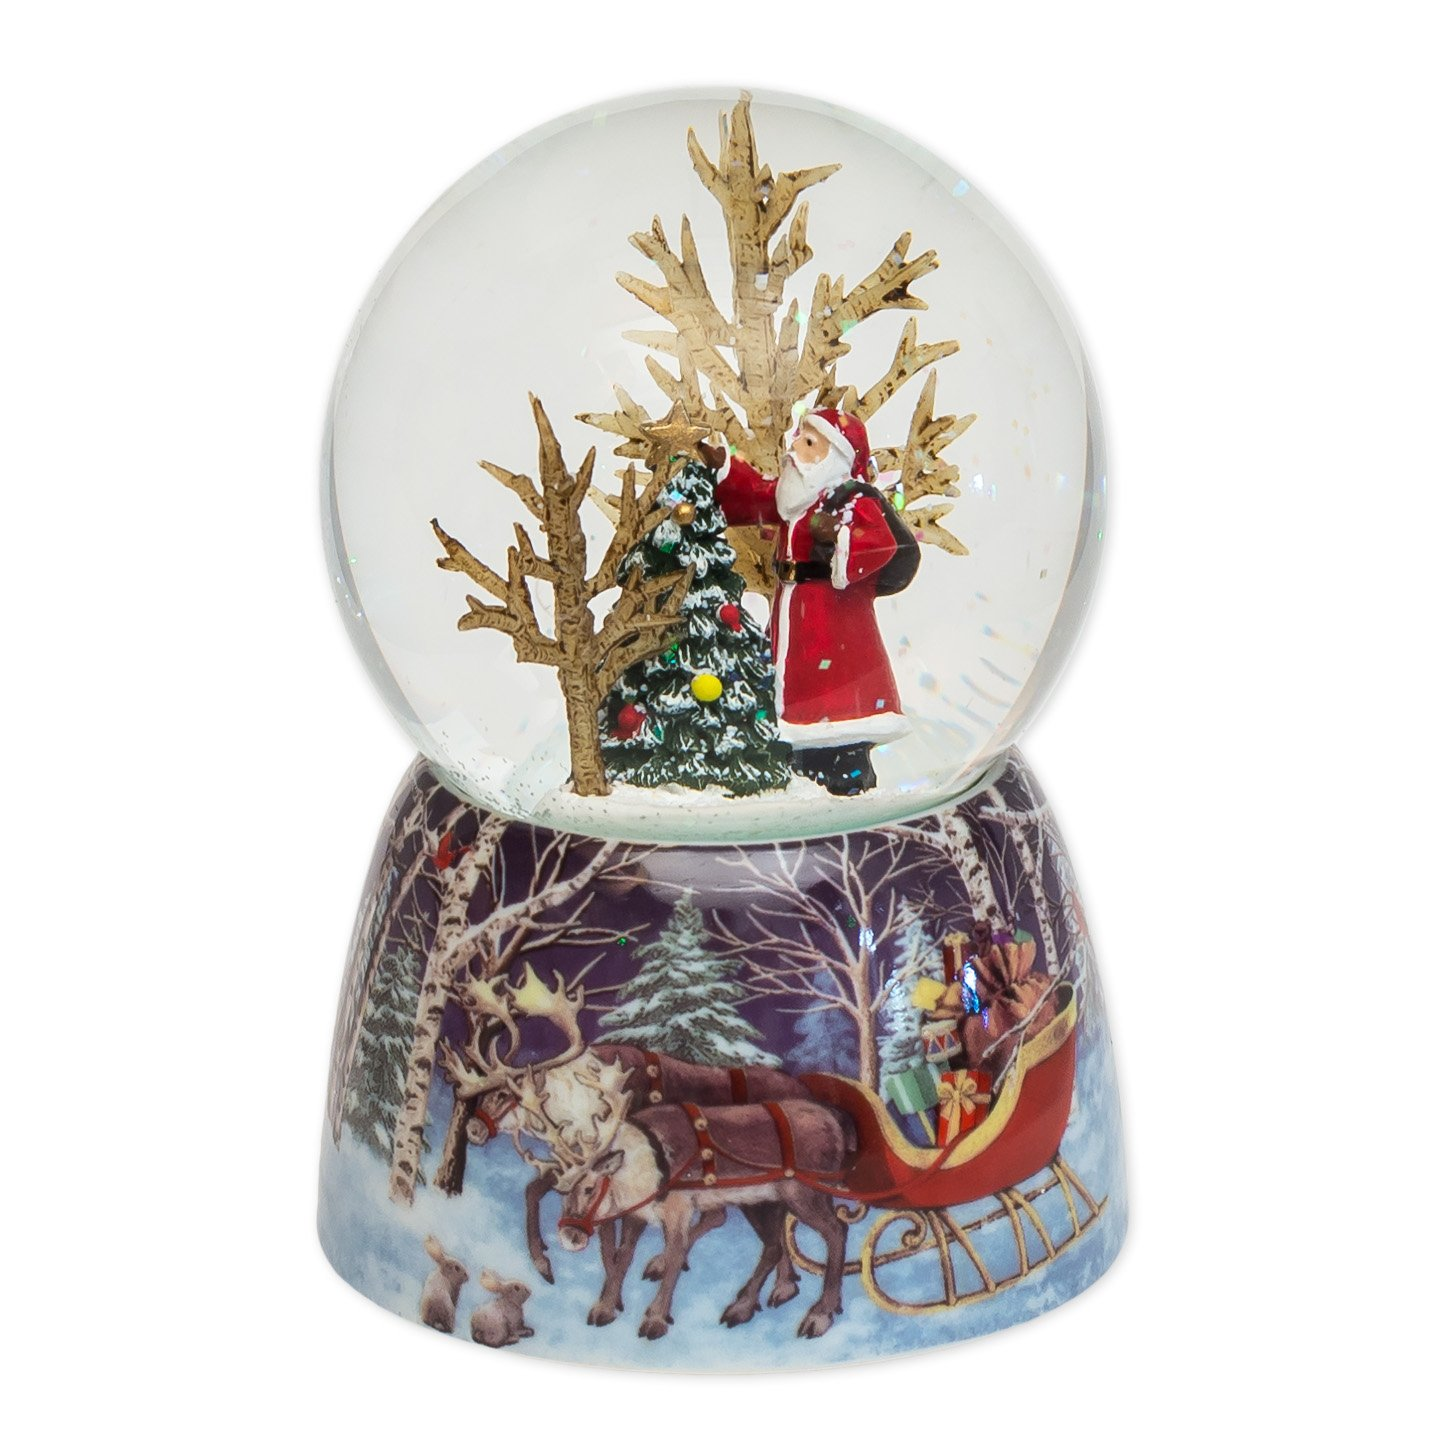 Musical 4.75'' Santa with Christmas Tree Glitter Dome - Plays Jingle Bells